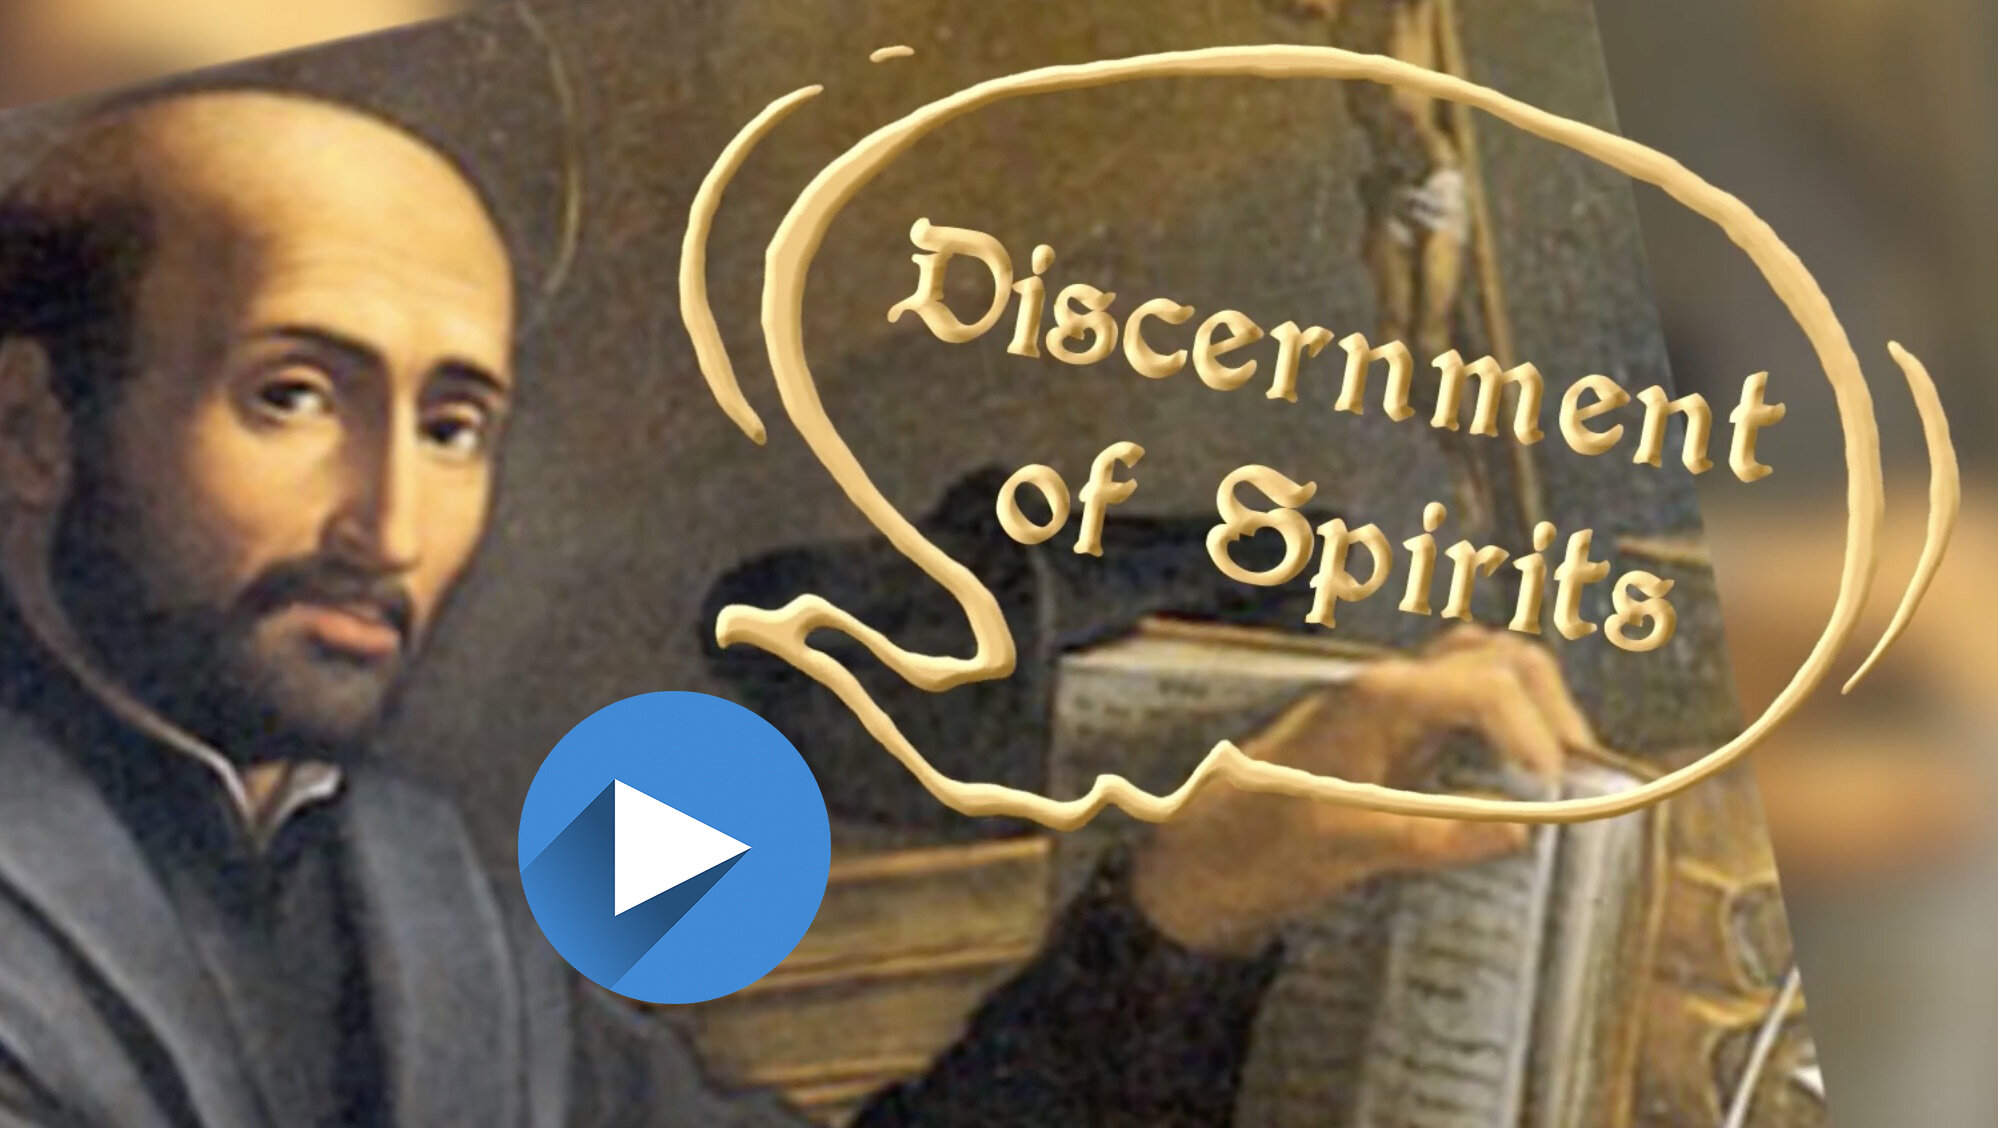 DISCERNMENT OF SPIRITS VIDEO COVER with arrow.jpg